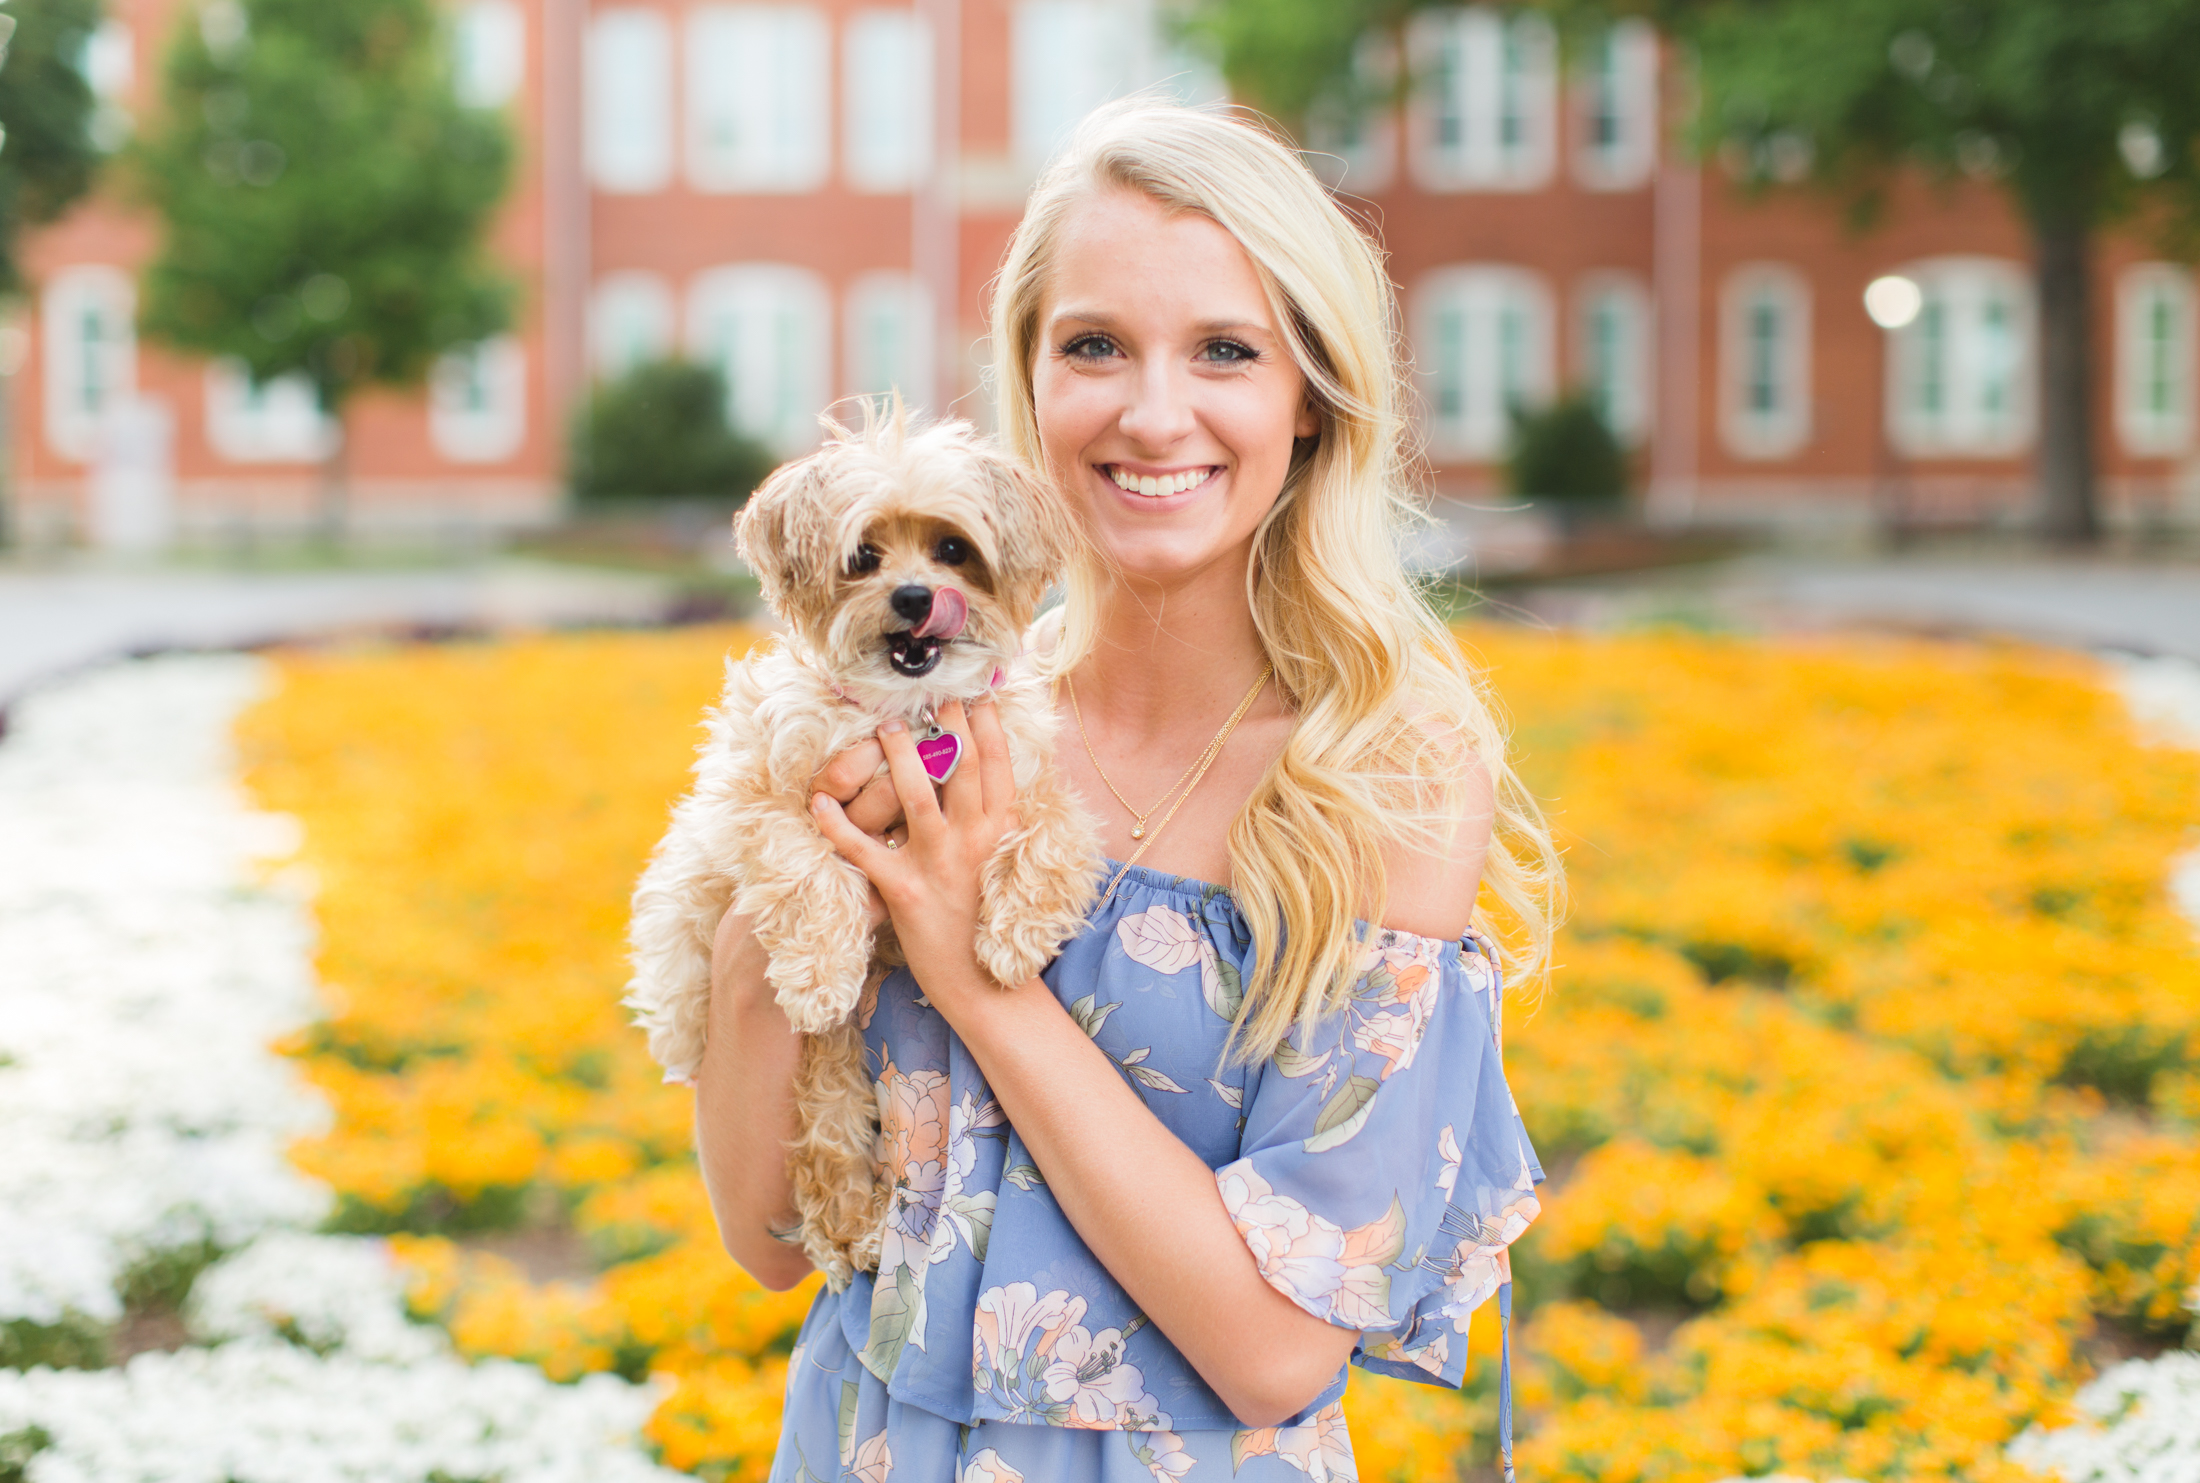 clemson university senior photos-6180.jpg